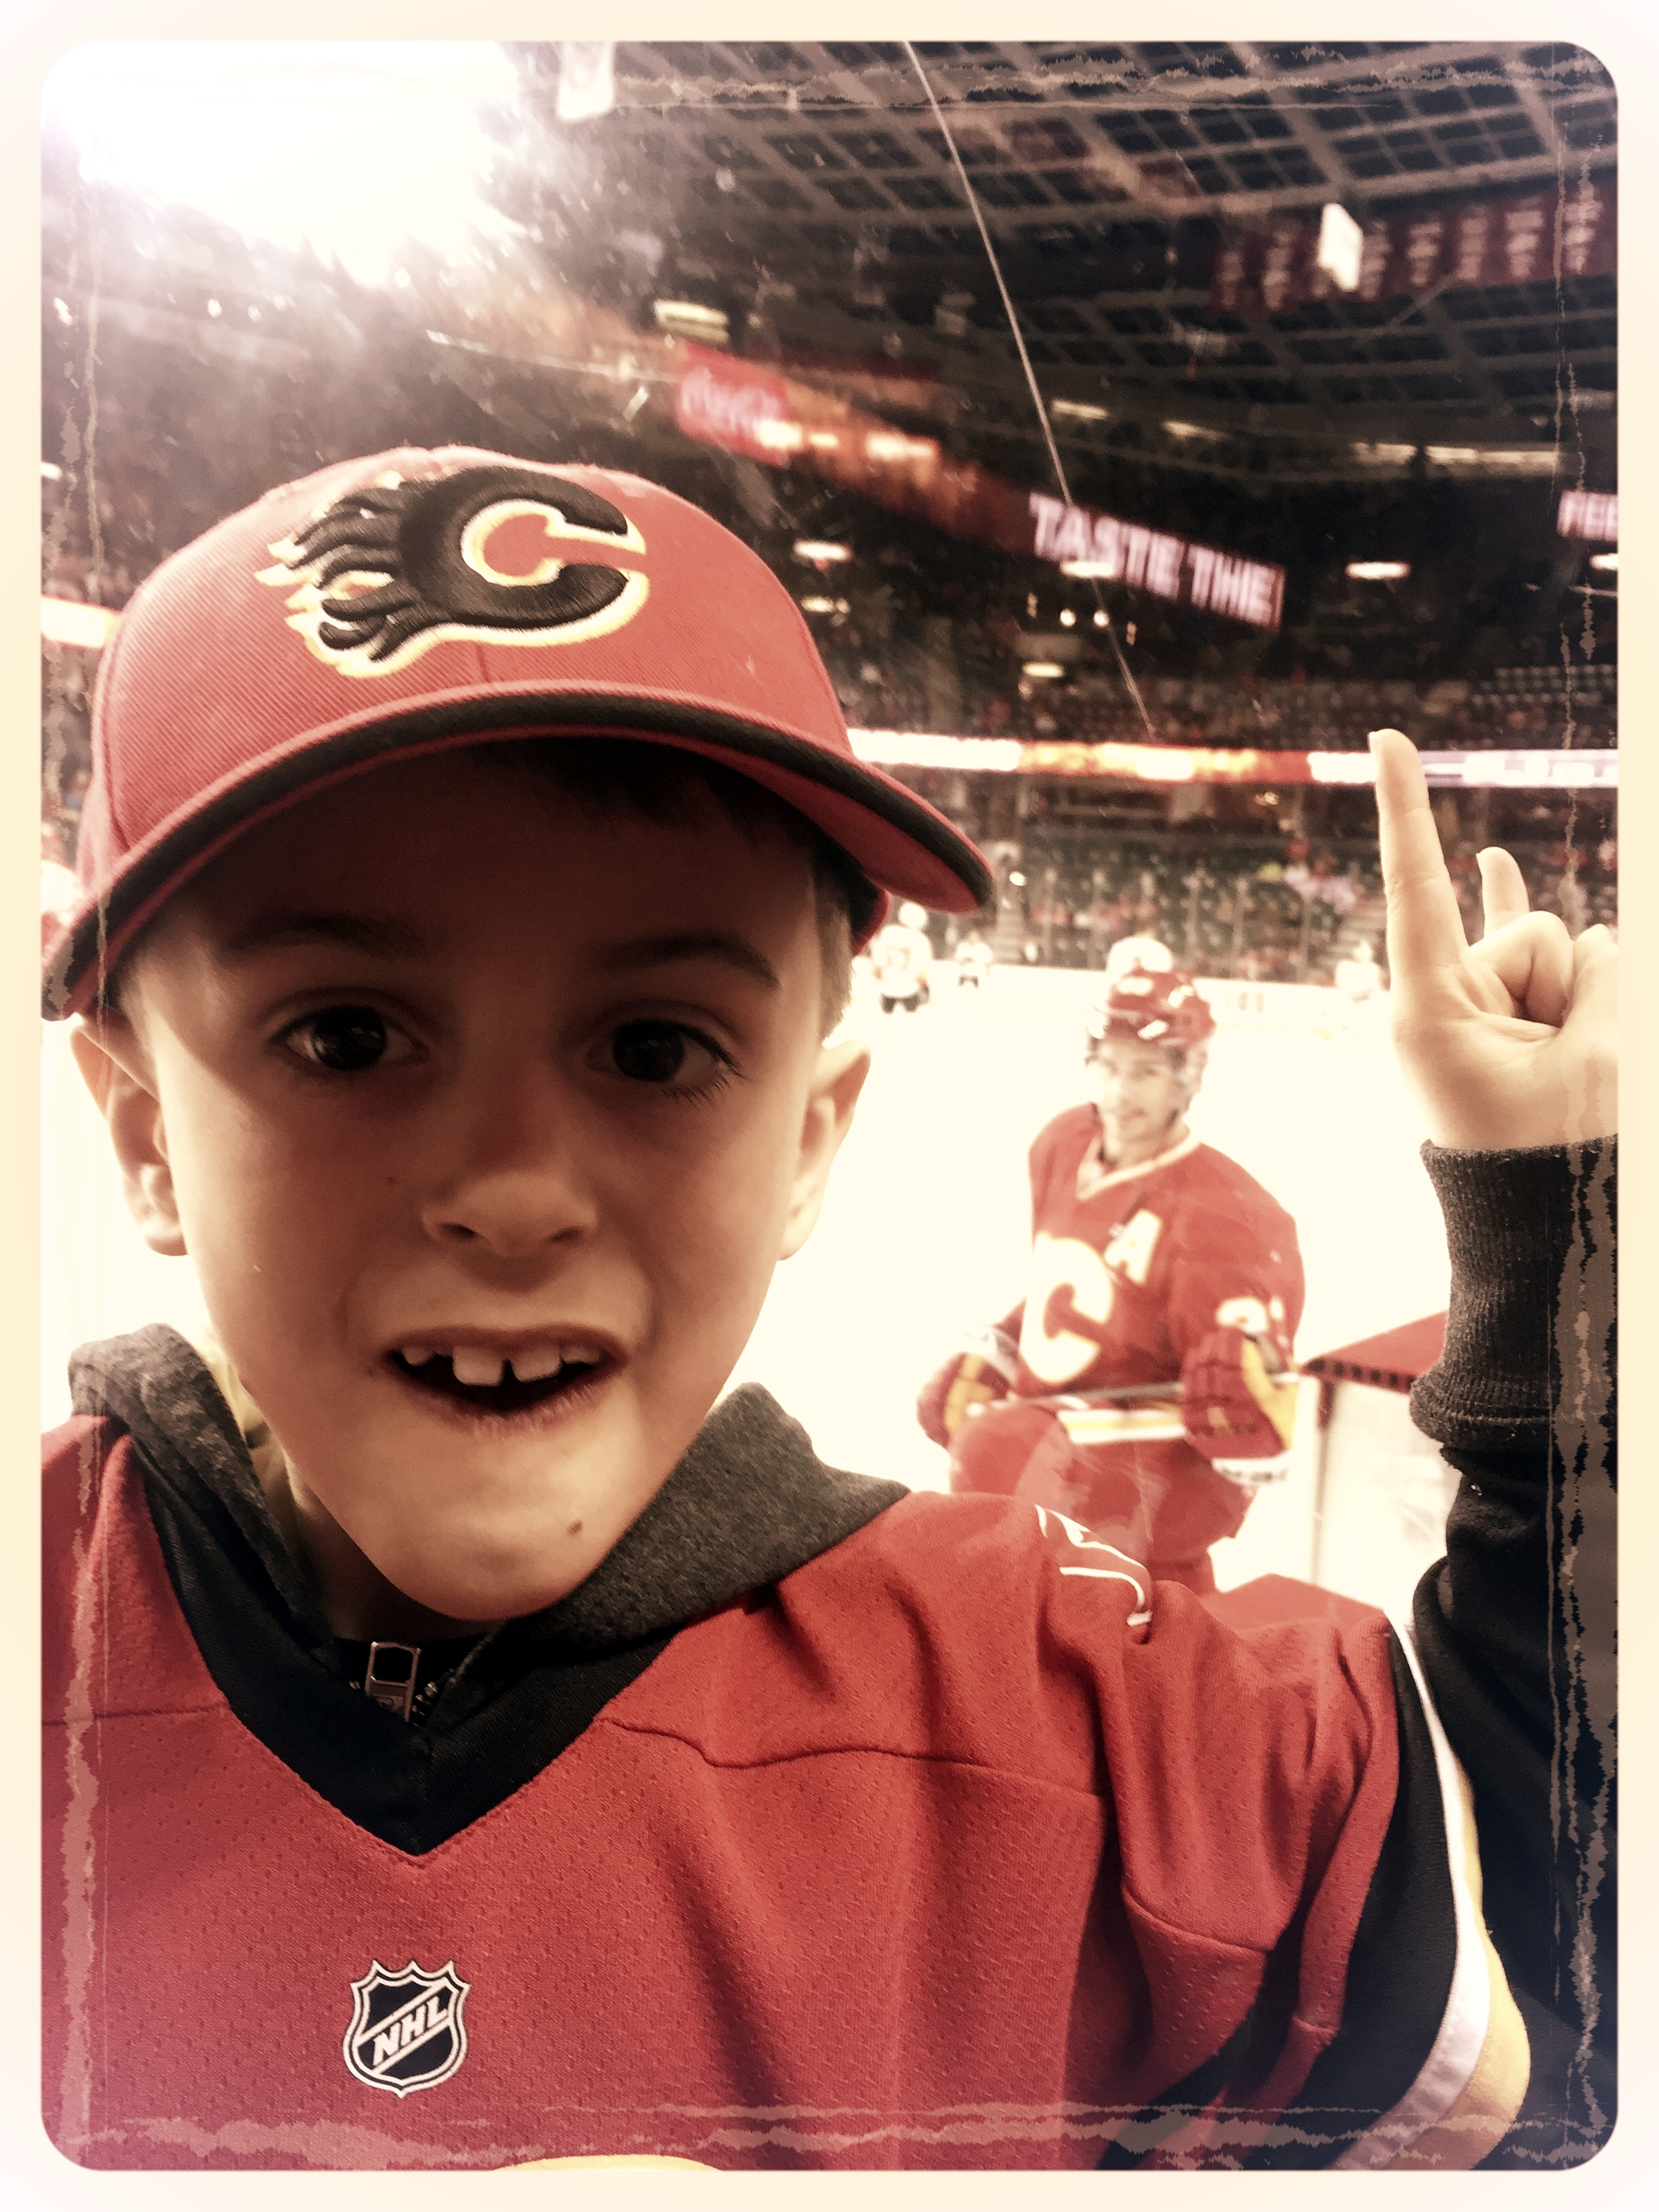 Ben at a Calgary Flames game with Sean Monohan in the background.